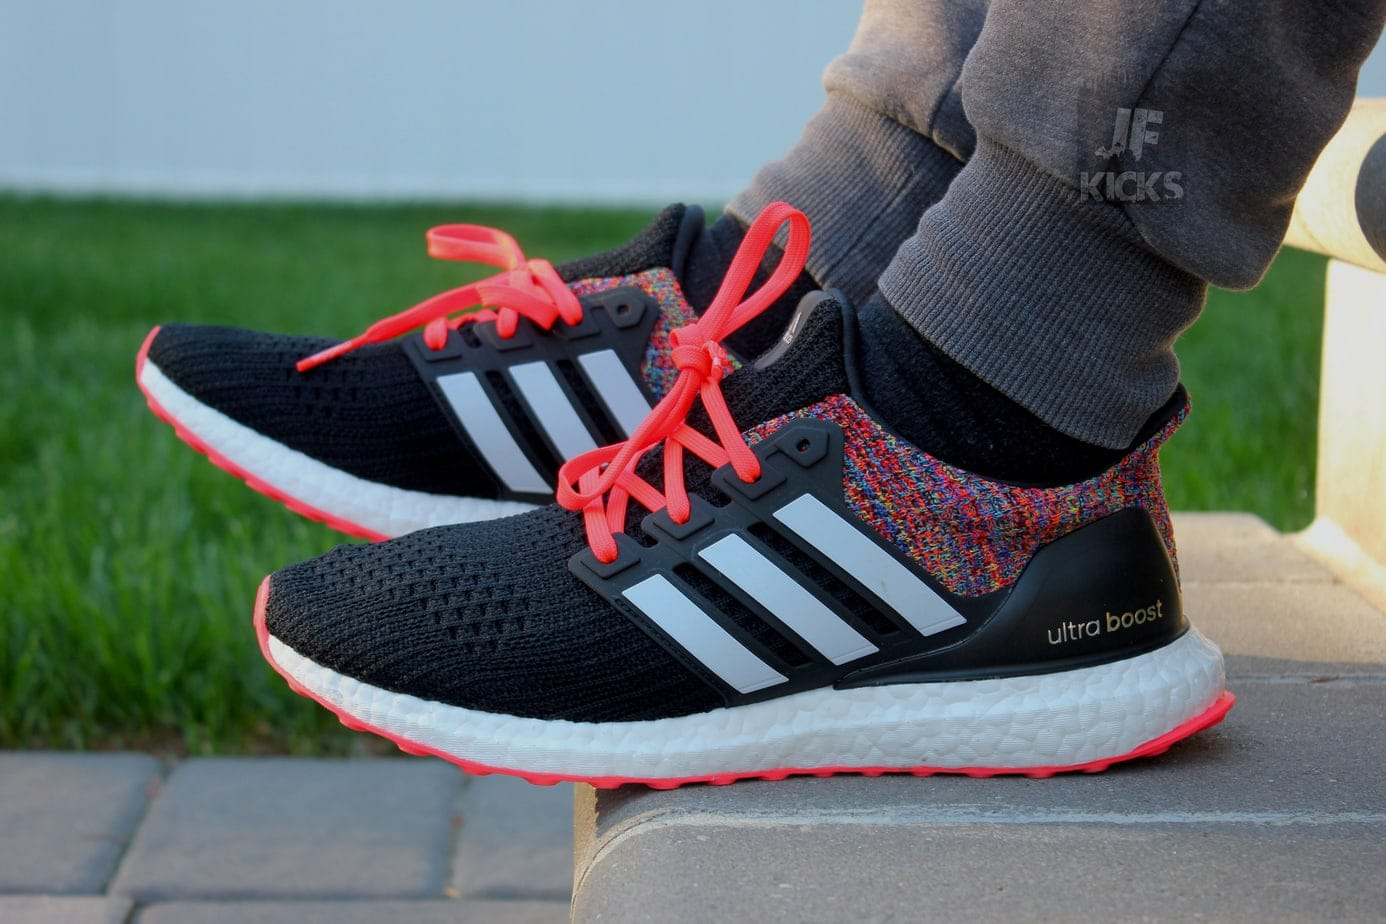 adidas Ultra Boost 4.0 CNY Dropping Next Month